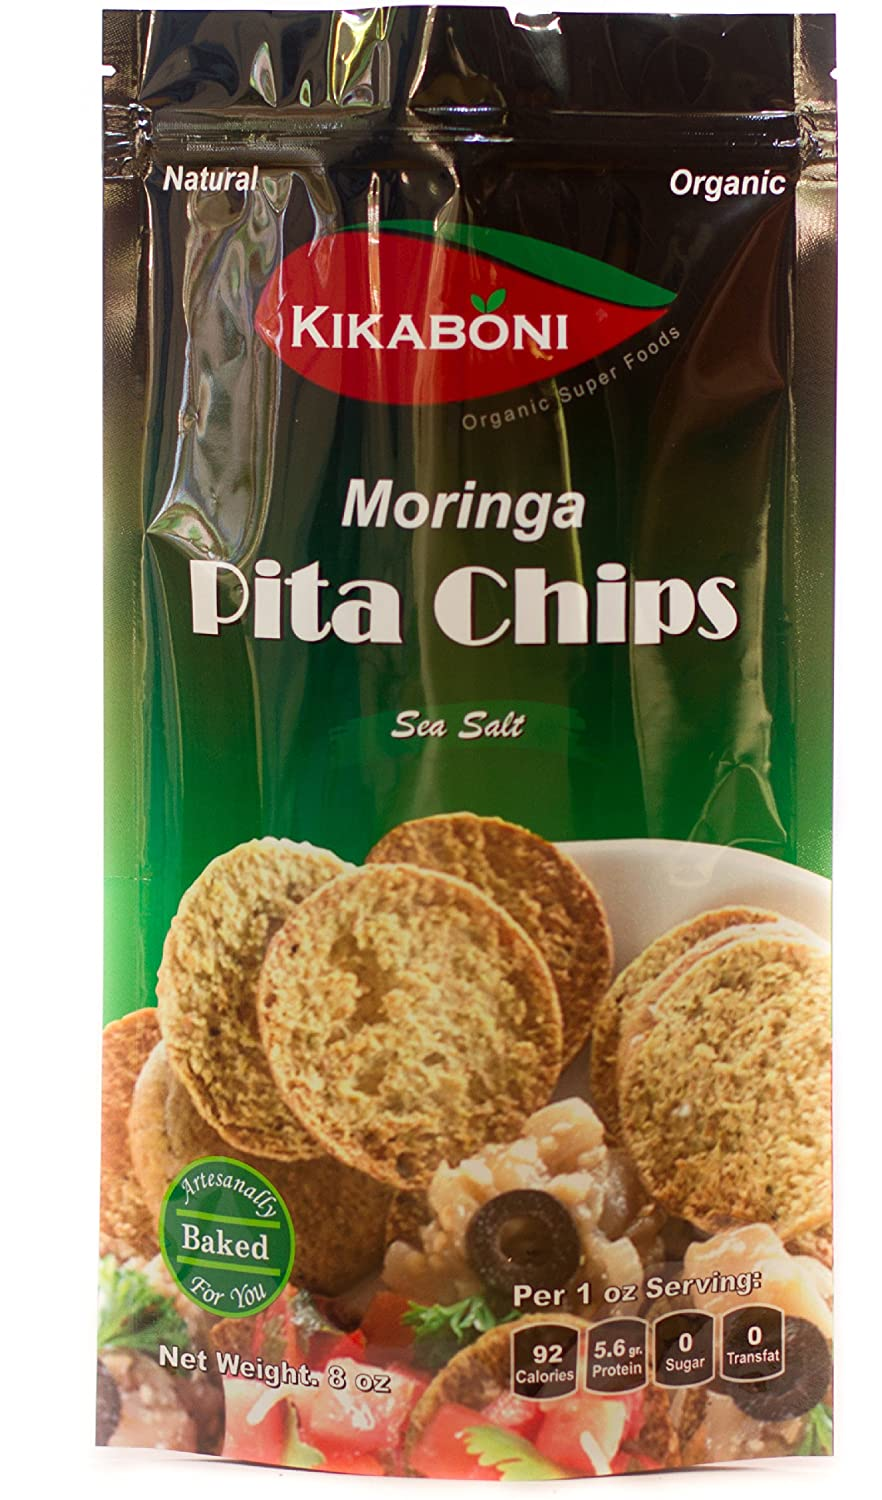 Amazon.com: Moringa Pita Chips 8oz (Pack of 6) Oz By Kikaboni- Delicious, Natural, Healthy, Low Fat with High Protein Vegetarian with 100% Pure Moringa ...